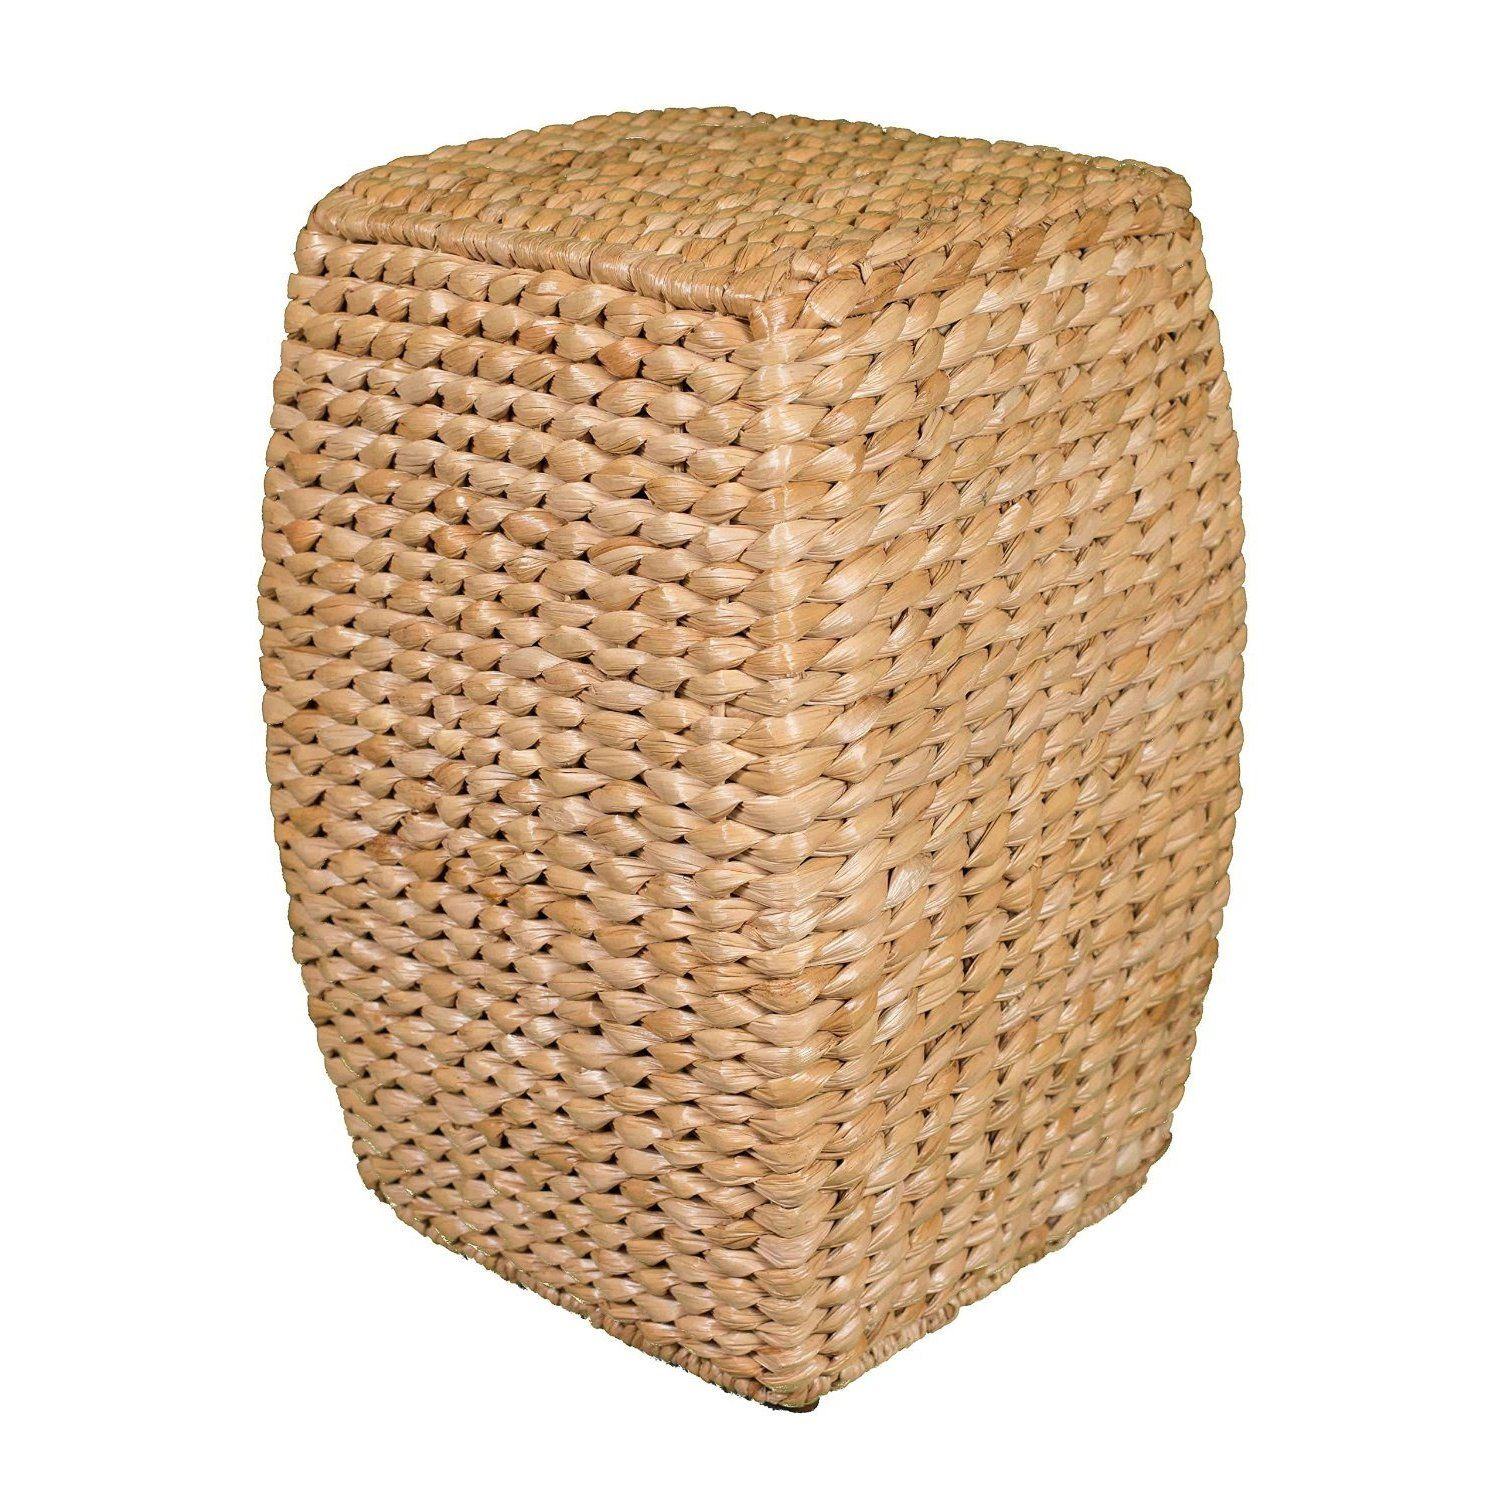 Birdrock Home Honey Seagrass Rattan 21 Inch Accent Stool Made Of